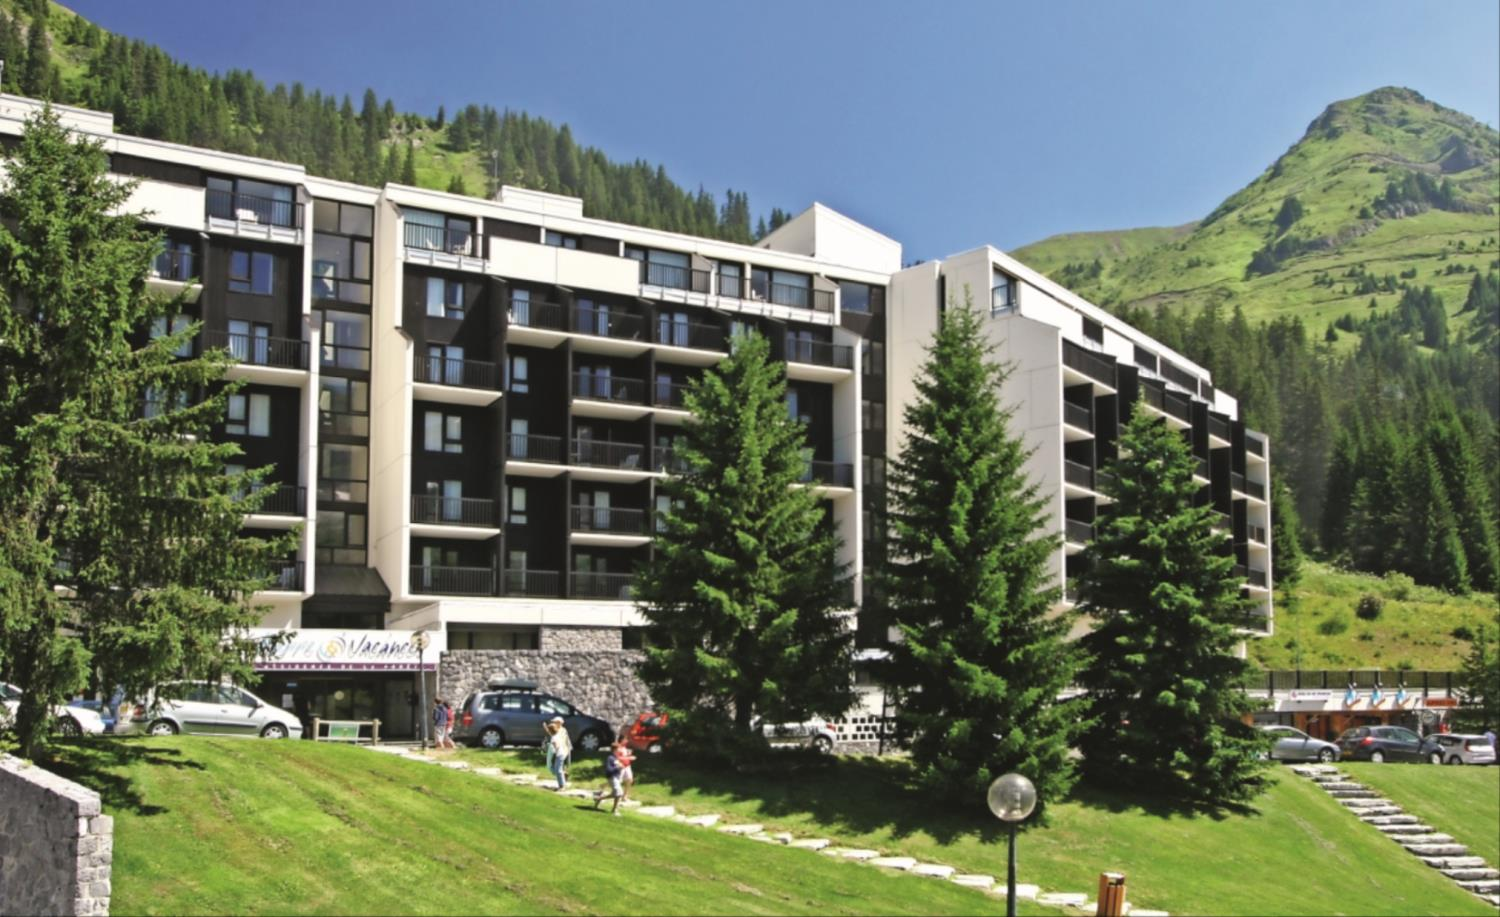 Holiday apartment La Foret 3p 6/7 South (669587), Flaine, Upper Savoy, Rhône-Alps, France, picture 17